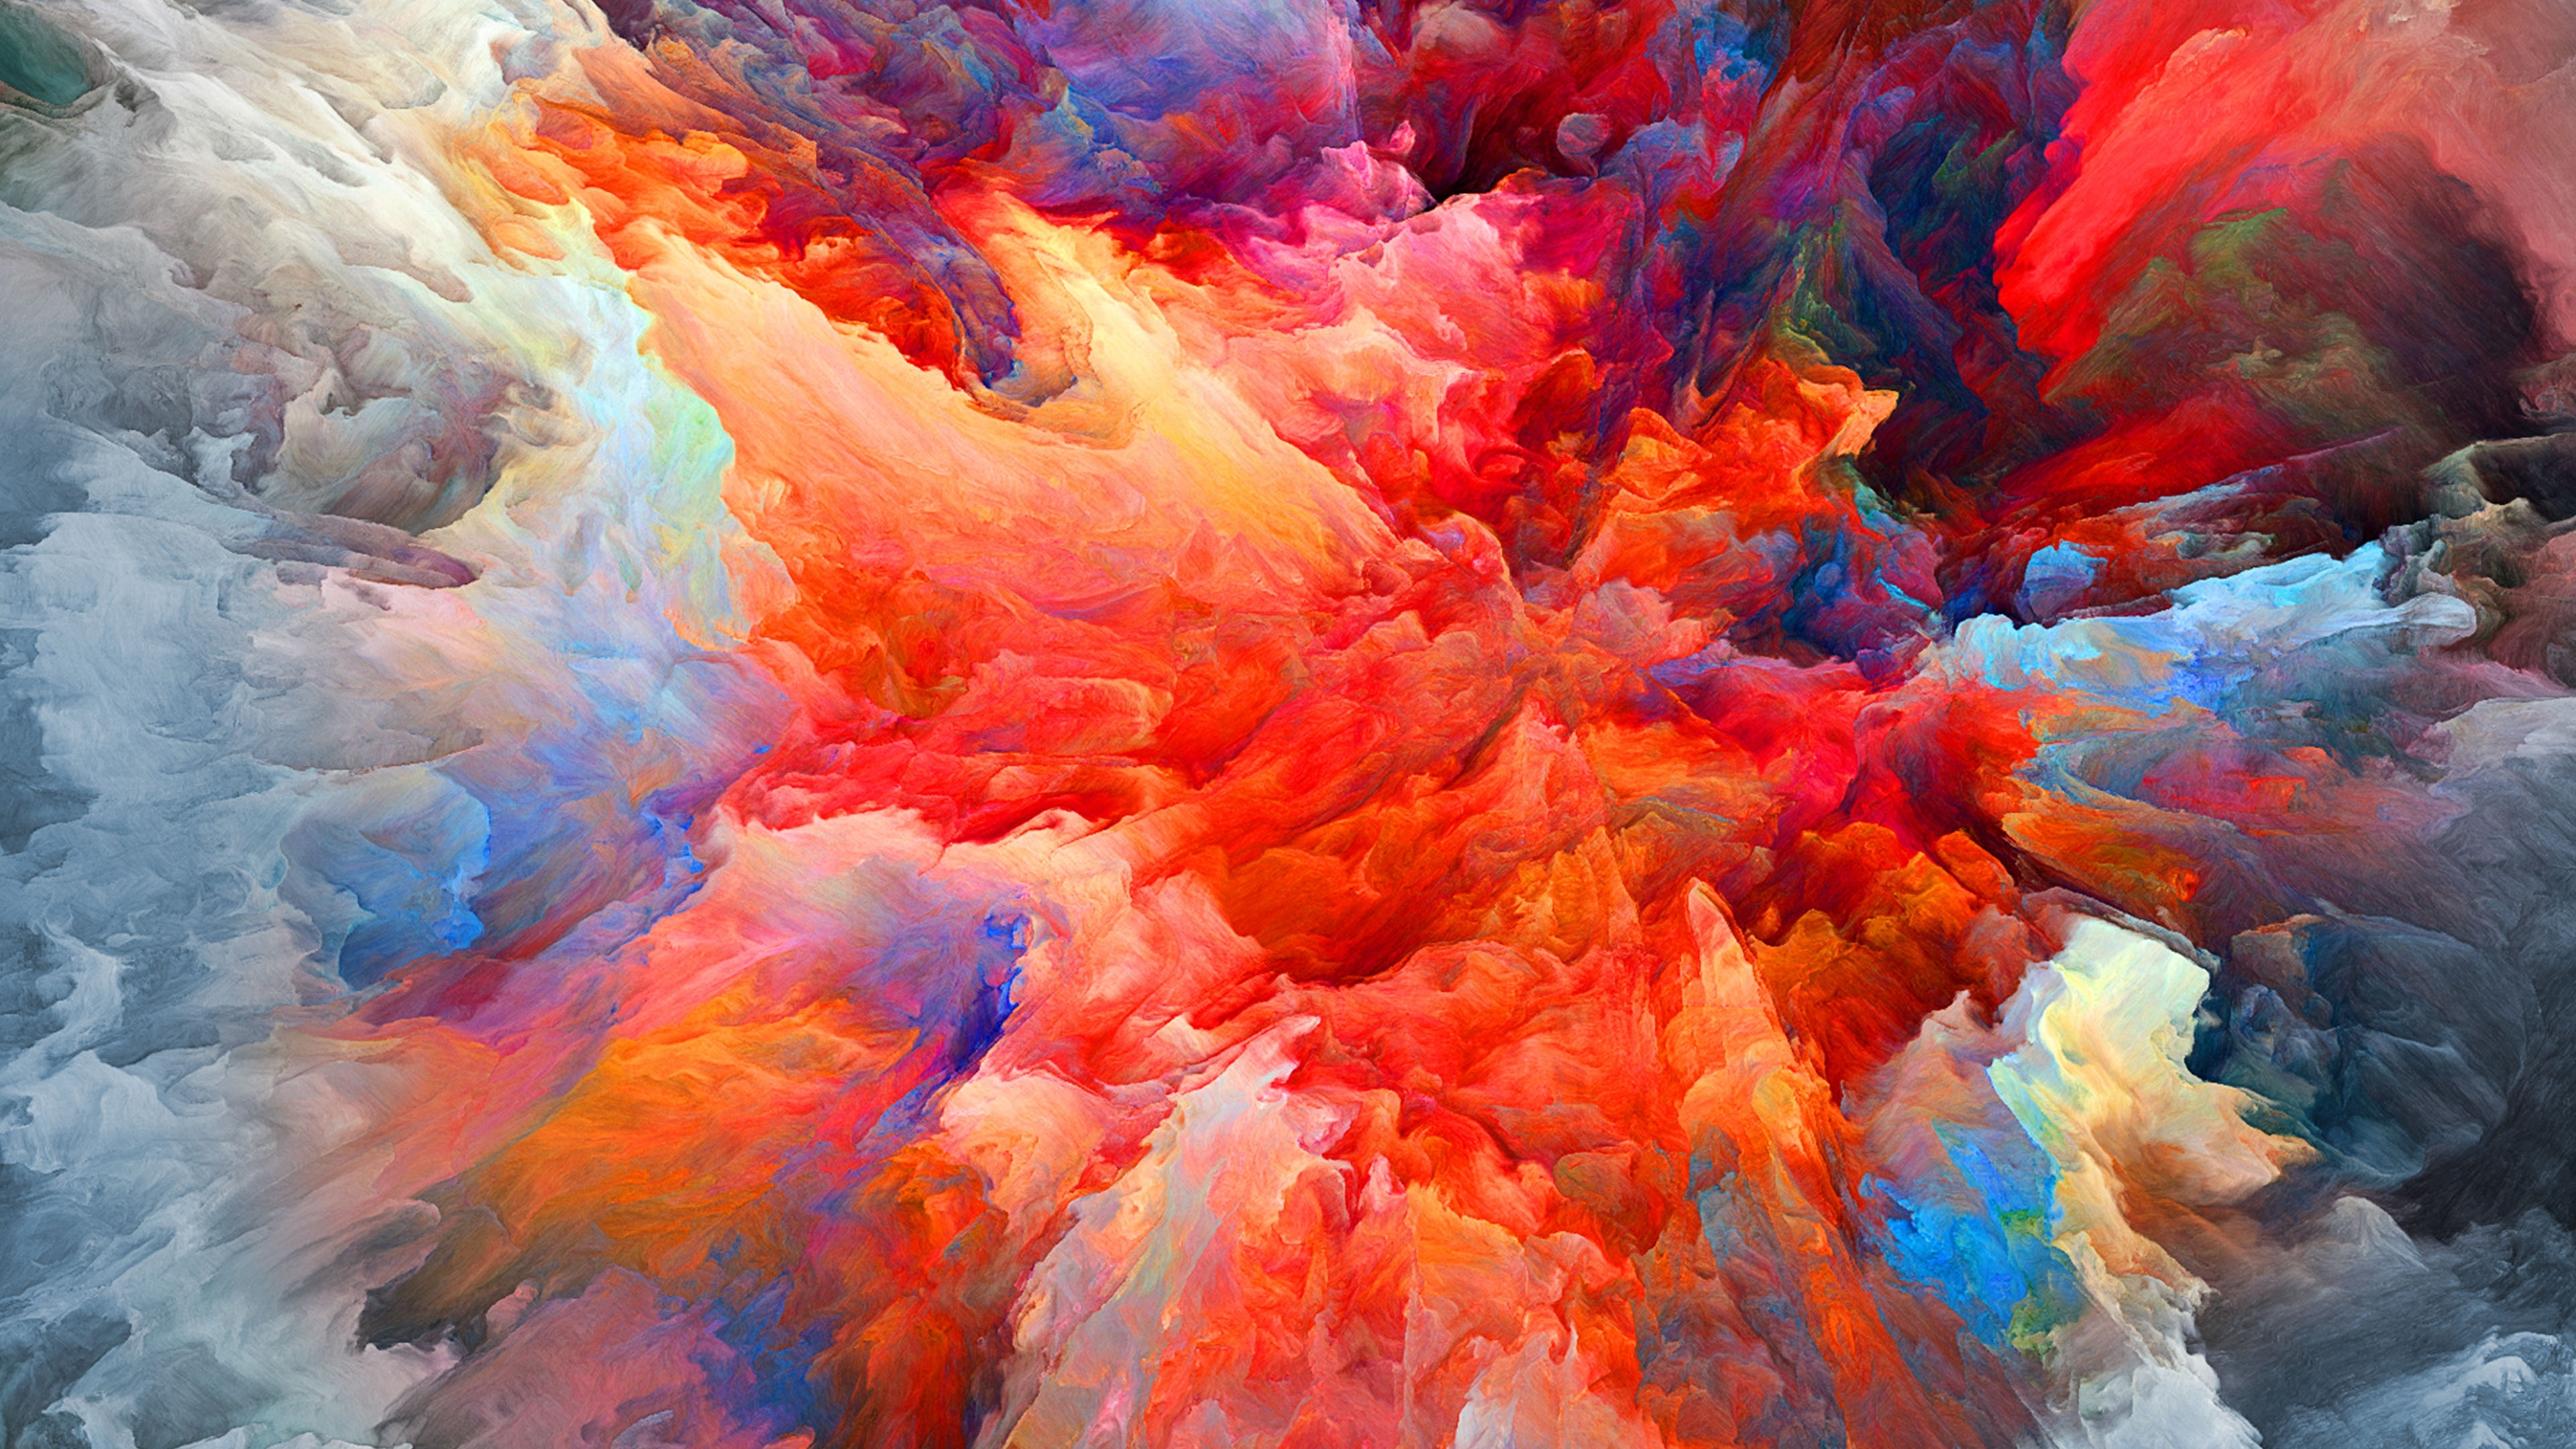 4k colorful blast of smoke wallpaper hd artist 4k wallpapers images photos and background - 4k colorful wallpaper ...